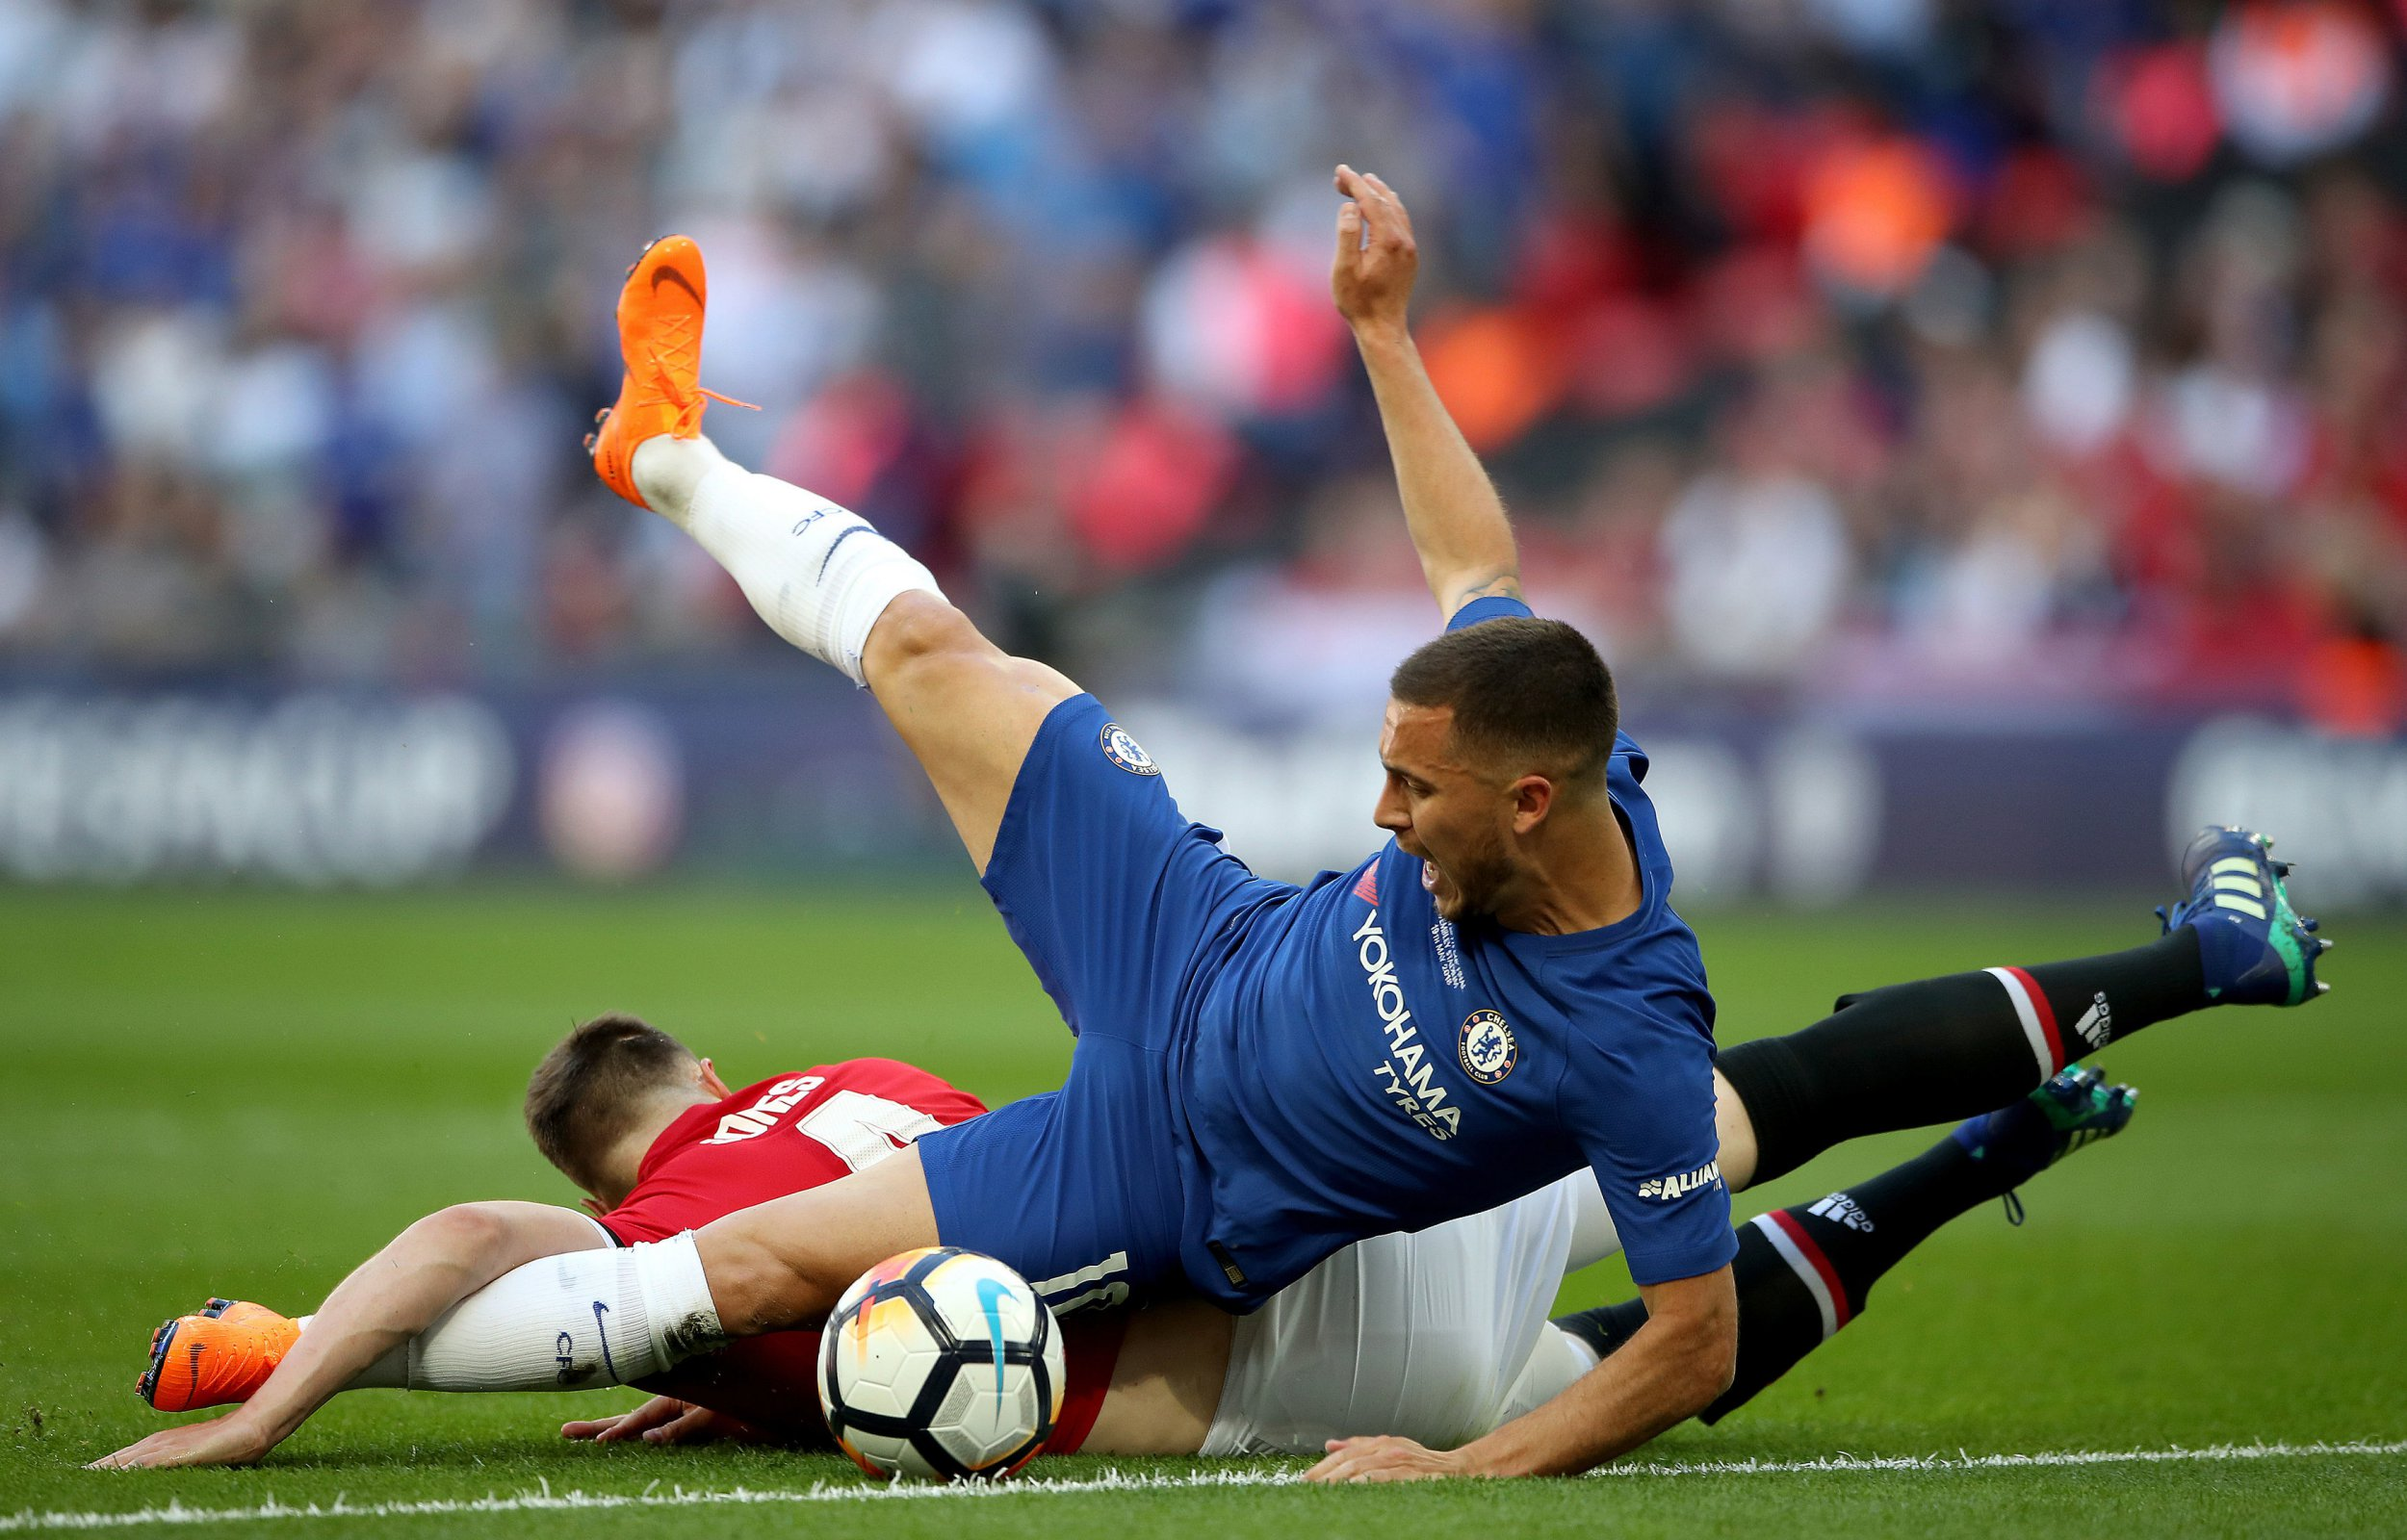 The reason Phil Jones was not sent off for challenge on Eden Hazard in FA Cup final